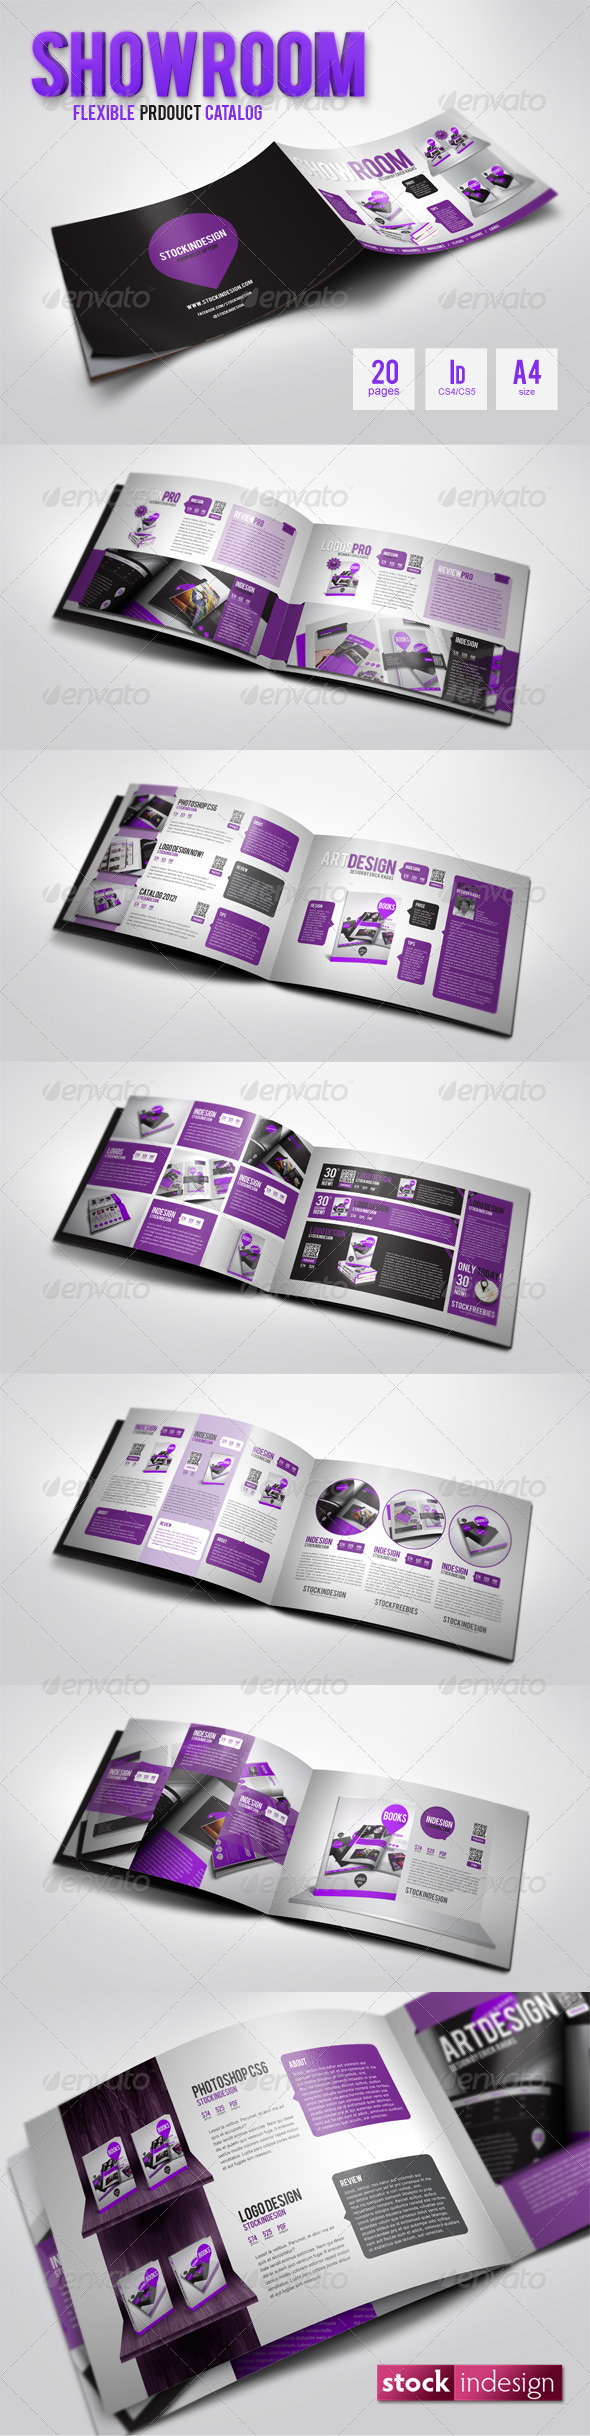 Graphic River ShowRoom Flexible Product Catalog Print Templates -  Brochures  Corporate 1995431